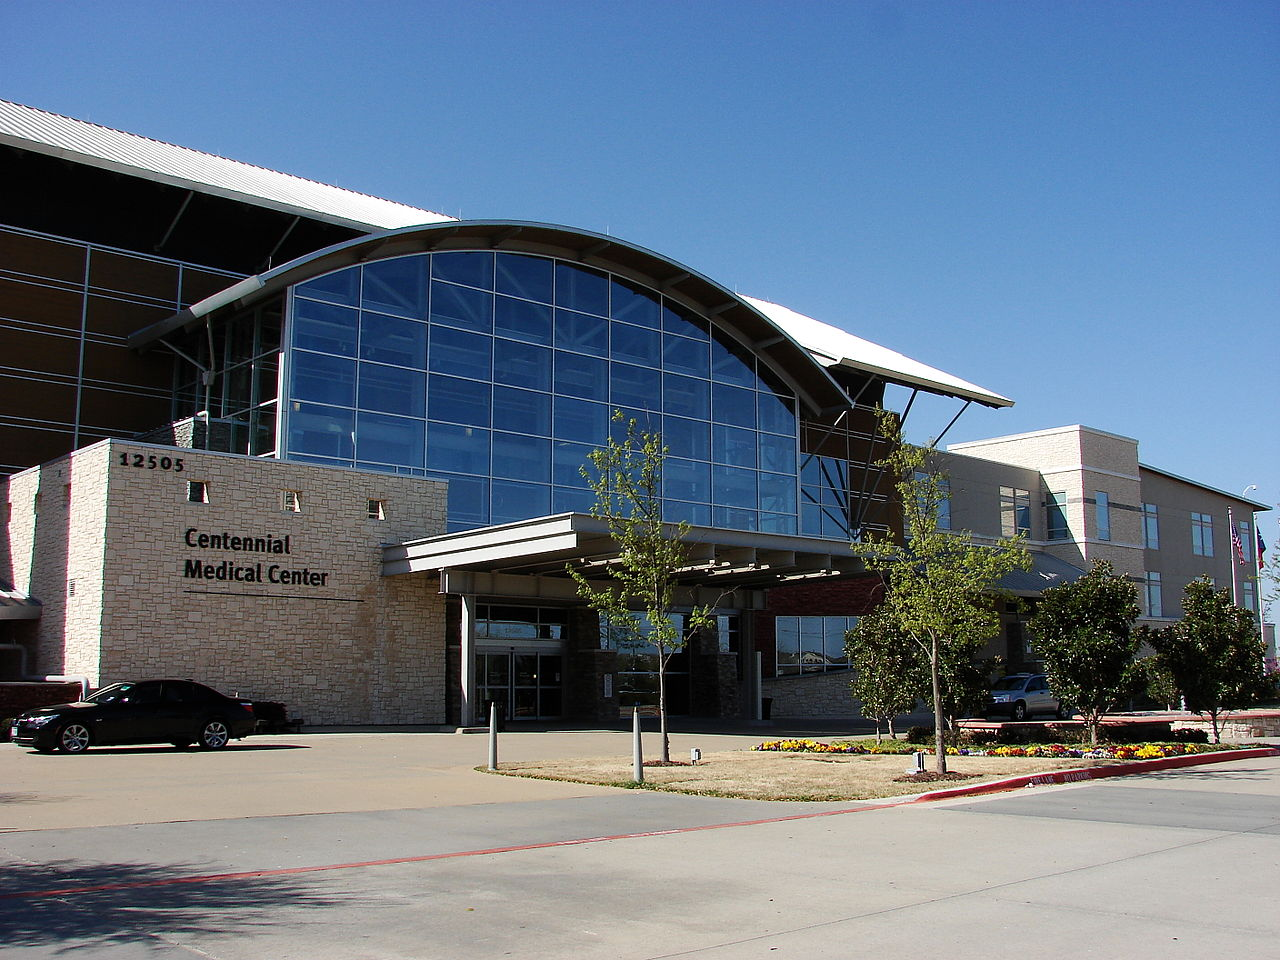 One of many businesses in Frisco -  Medical Center